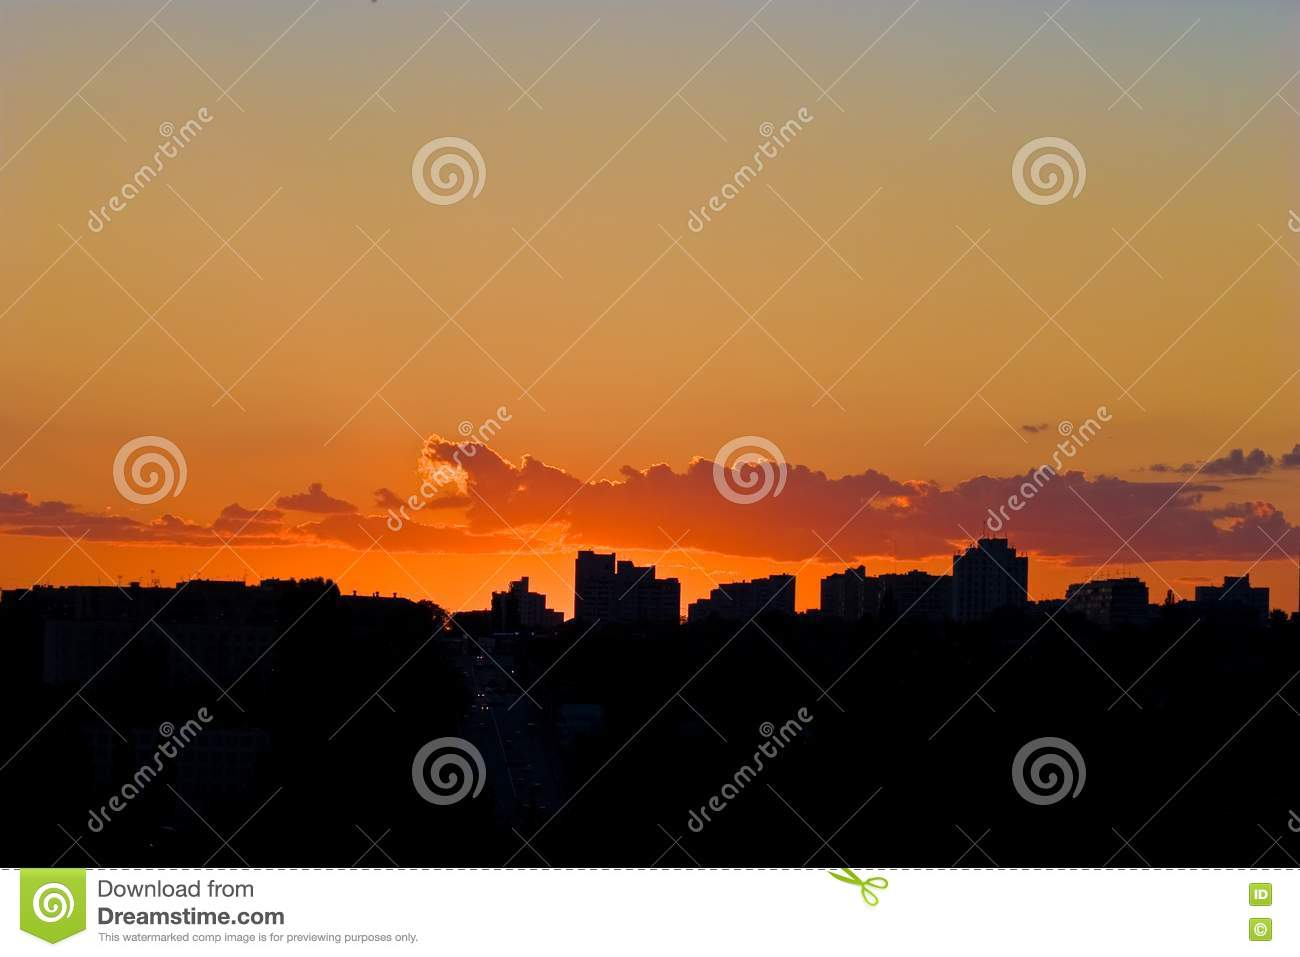 Evening City Sunset Picture Image 5058727